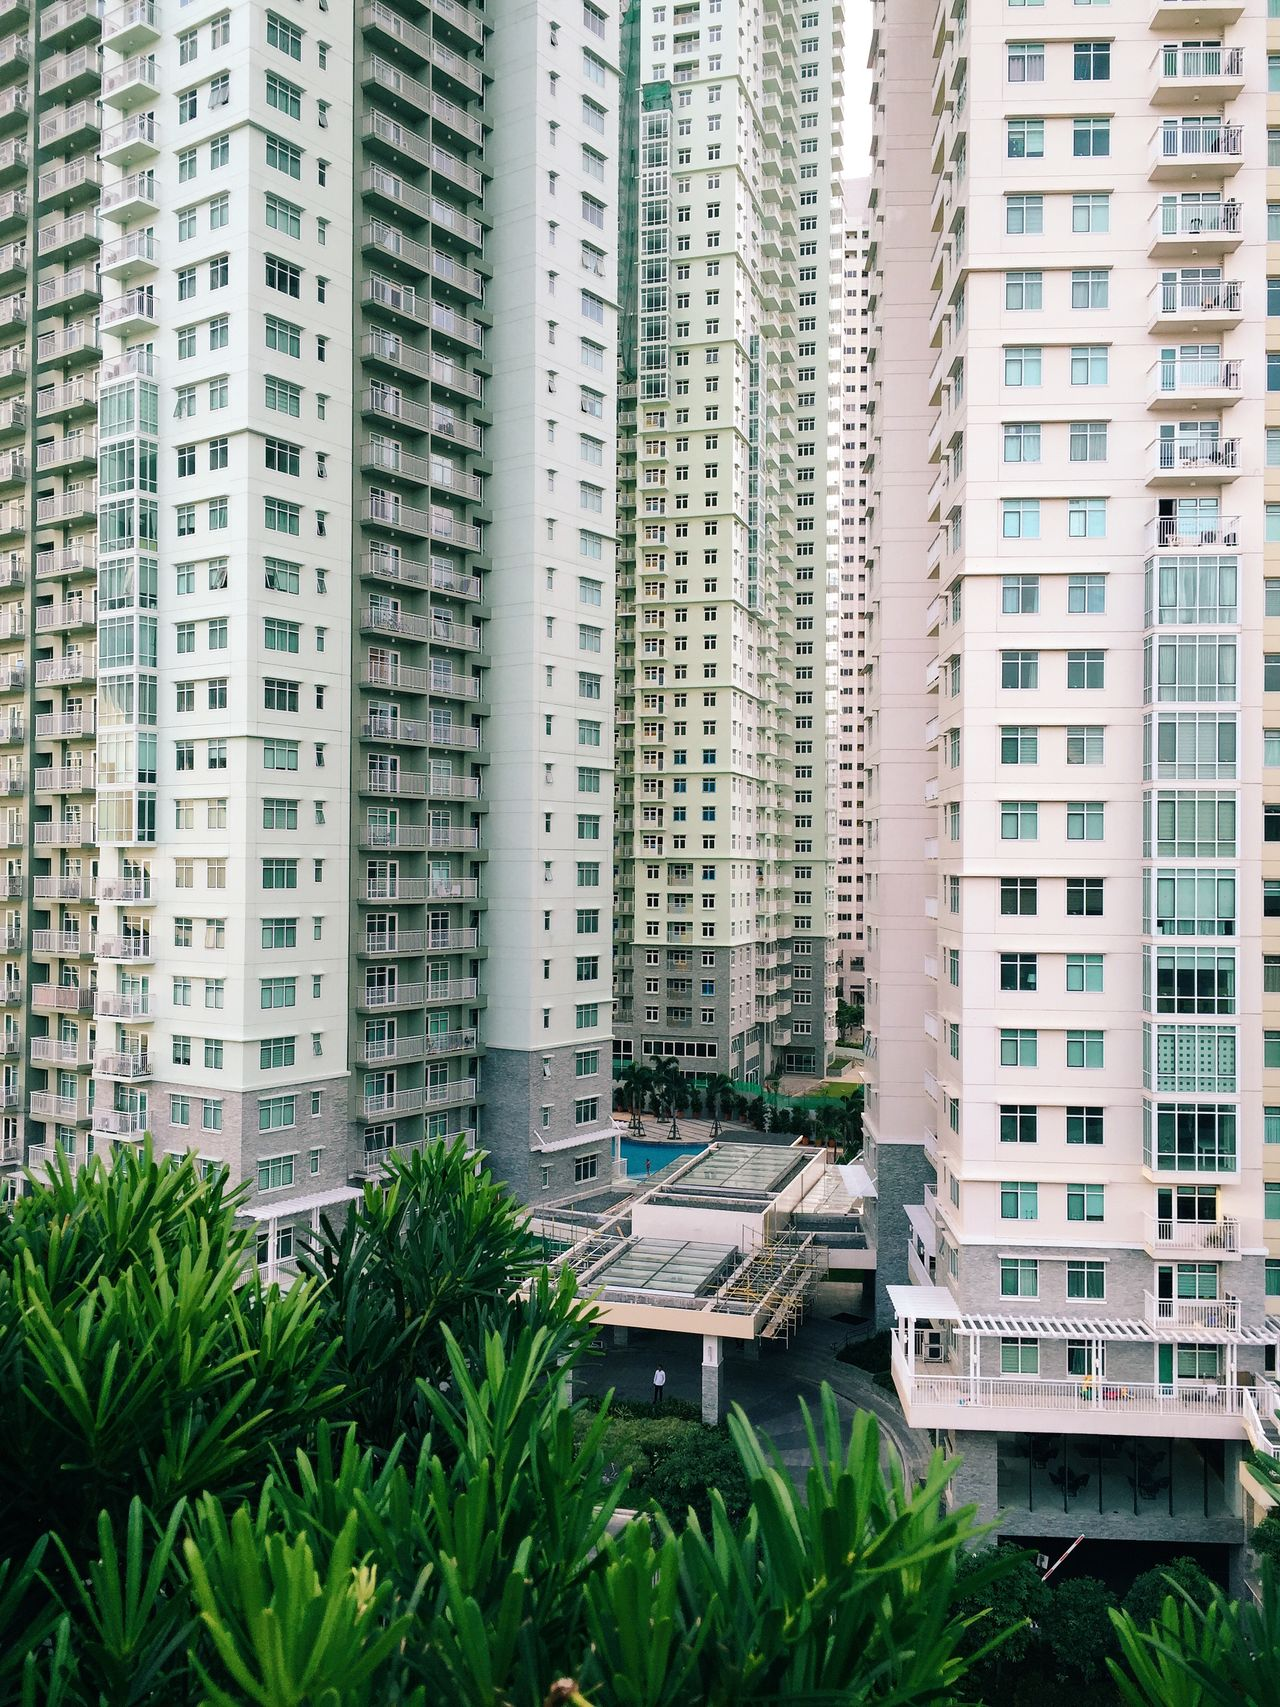 Modern apartment buildings in city